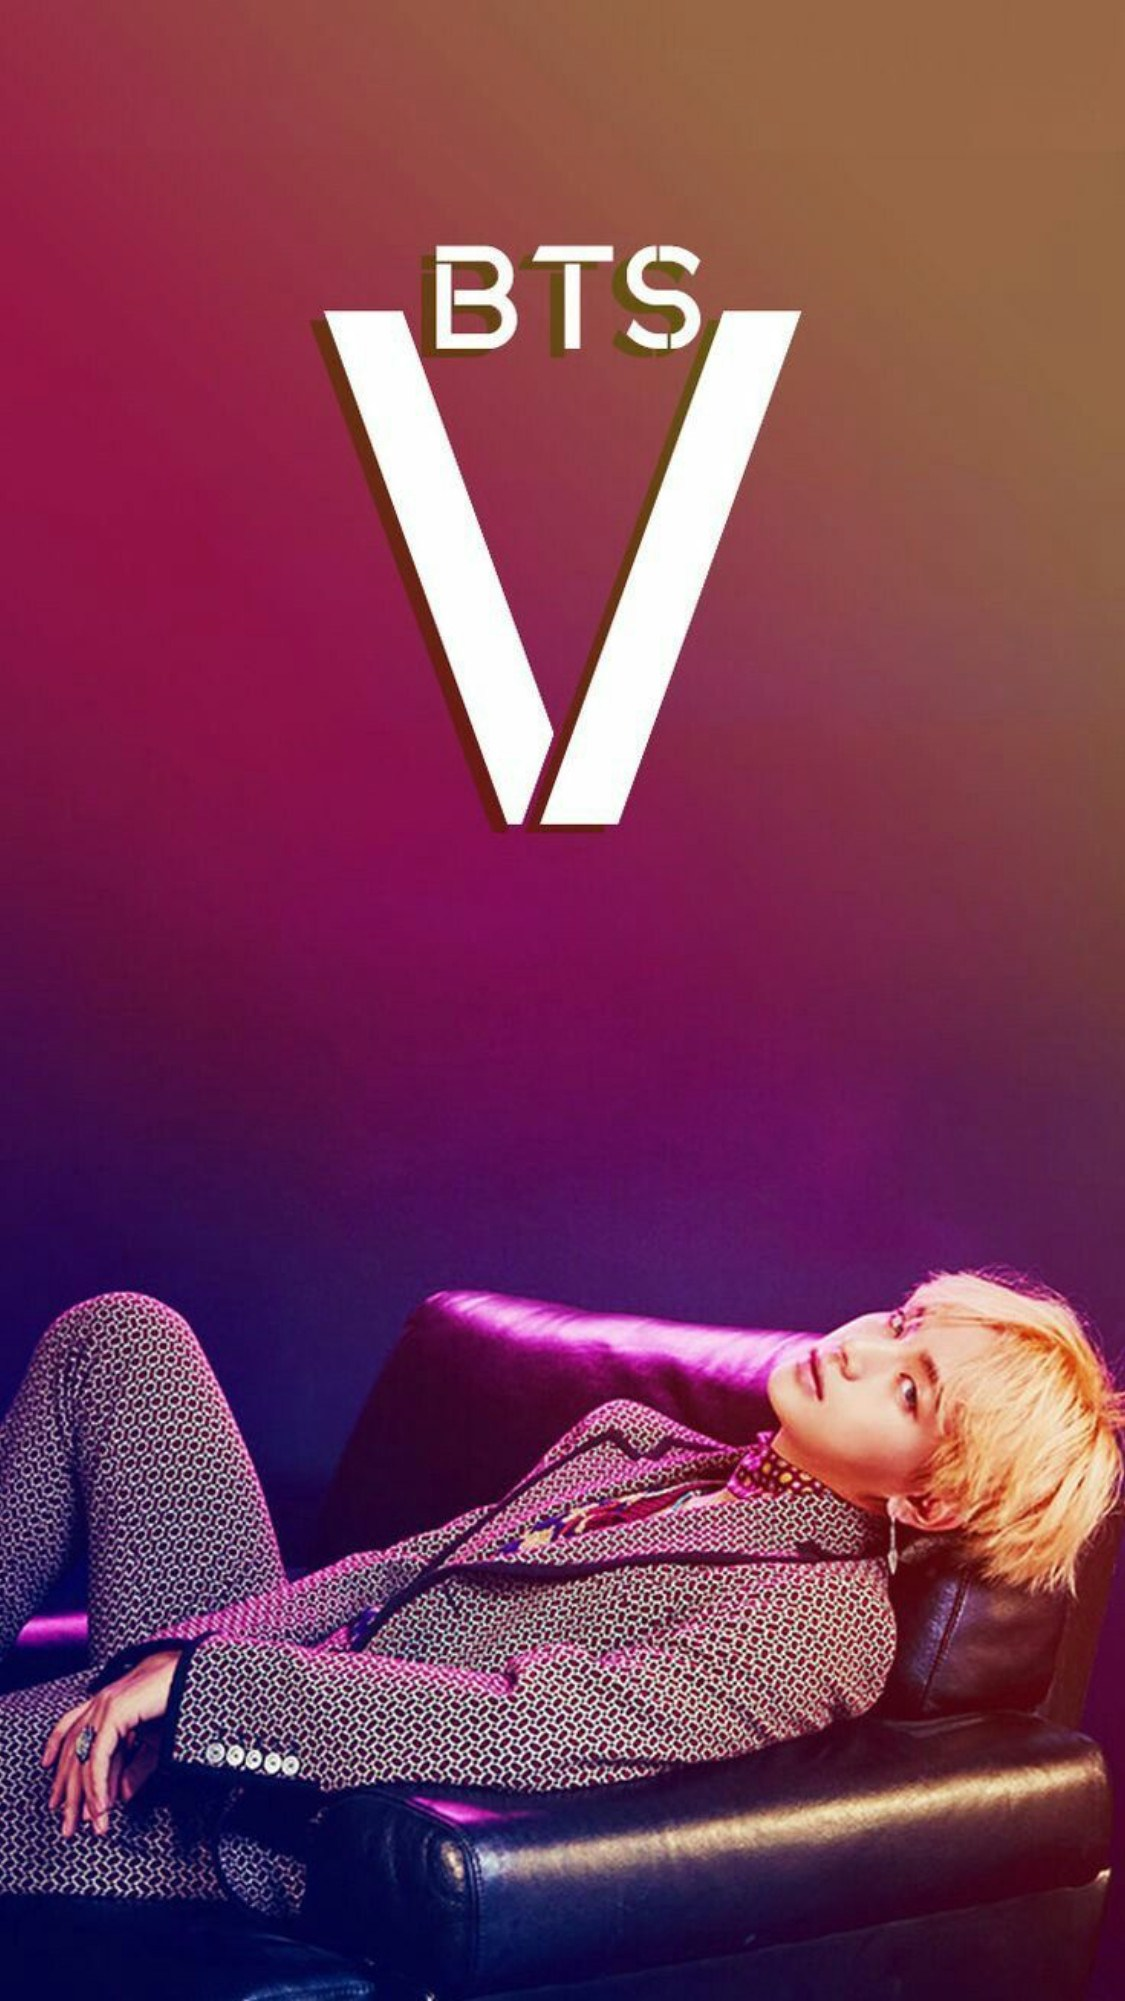 Bts Wings Wallpapers 90 Images Bts V Wallpaper Iphone 364880